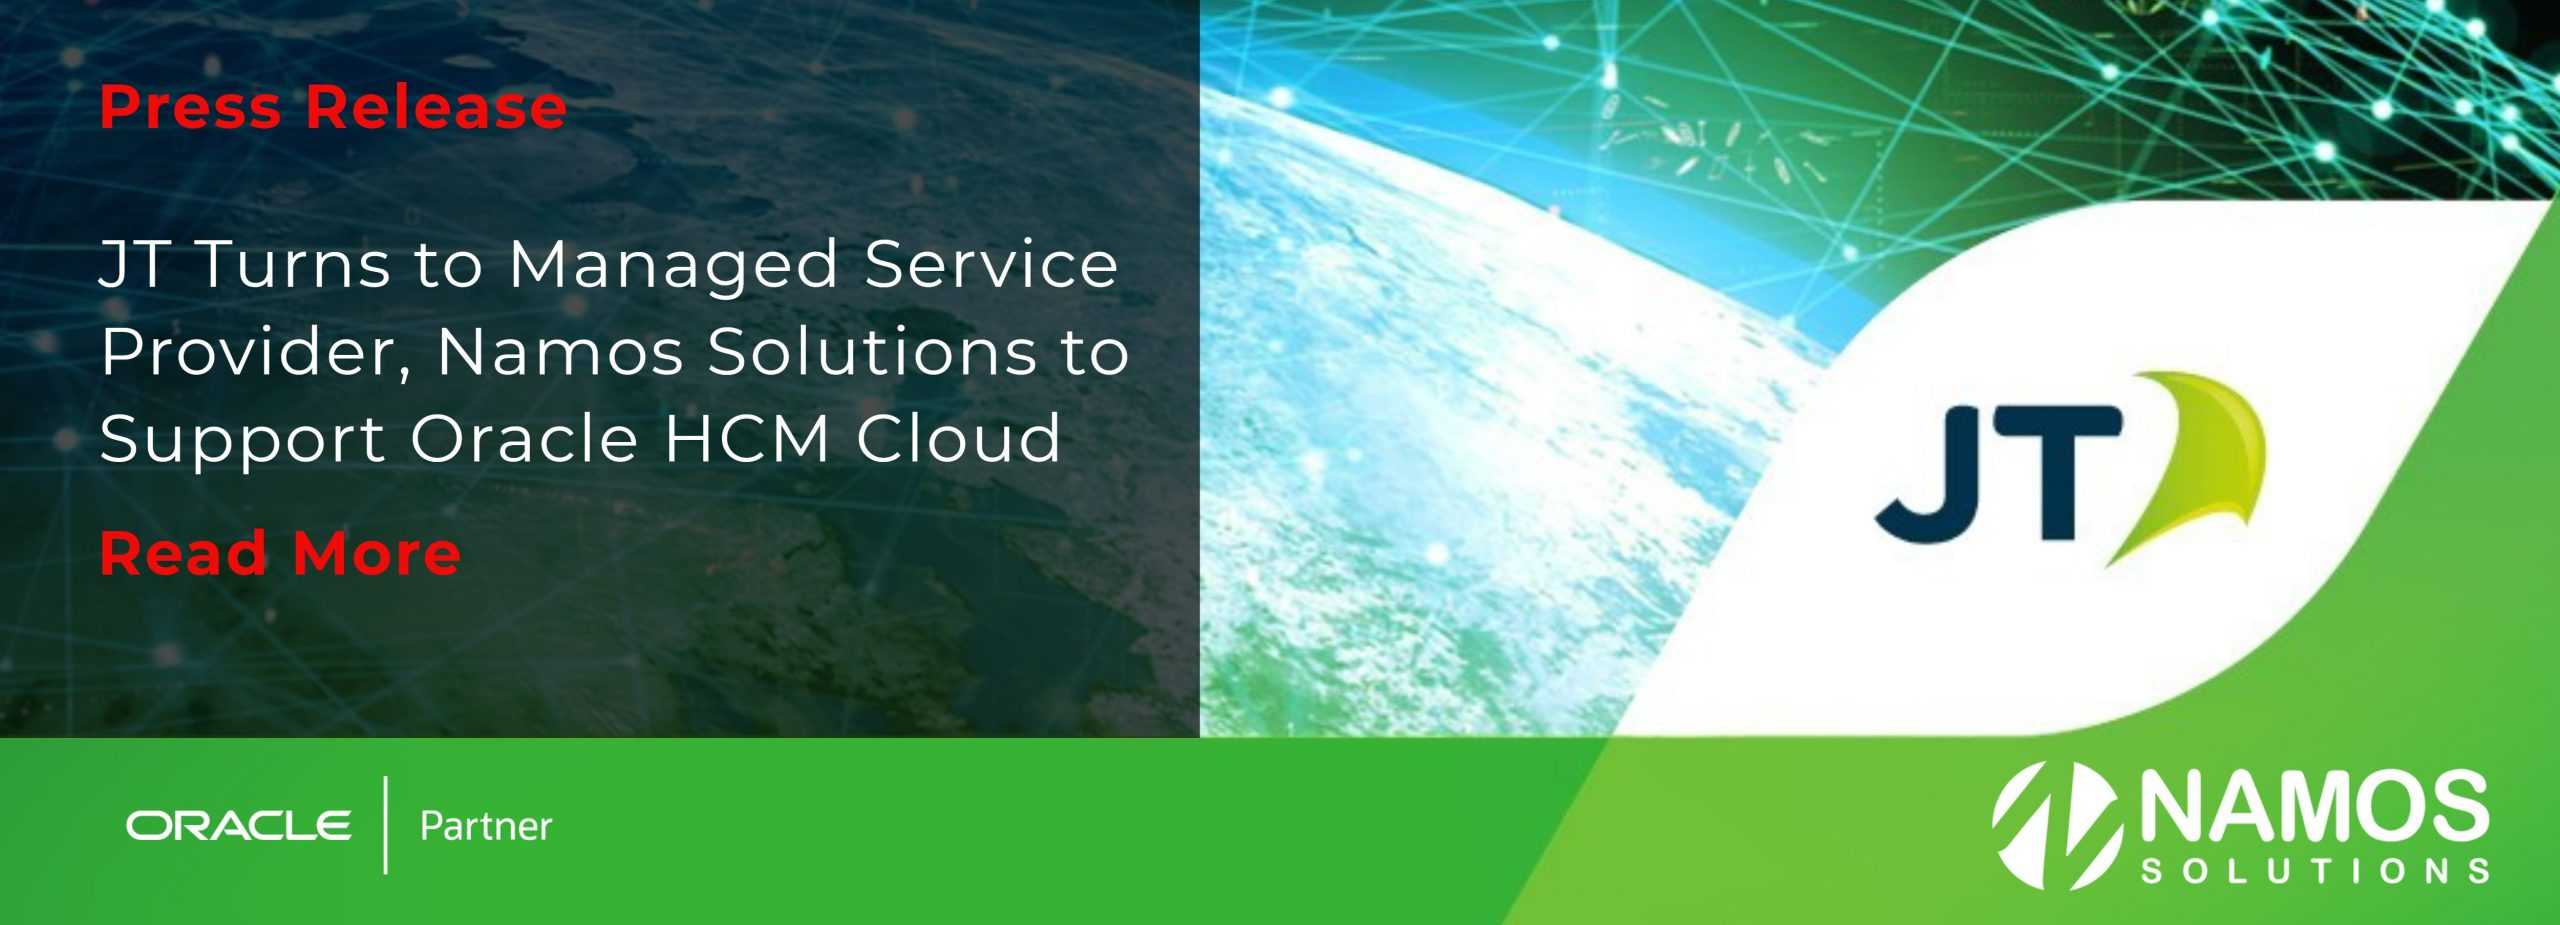 JT Turns to Managed Service Provider, Namos Solutions to Support Oracle HCM Cloud